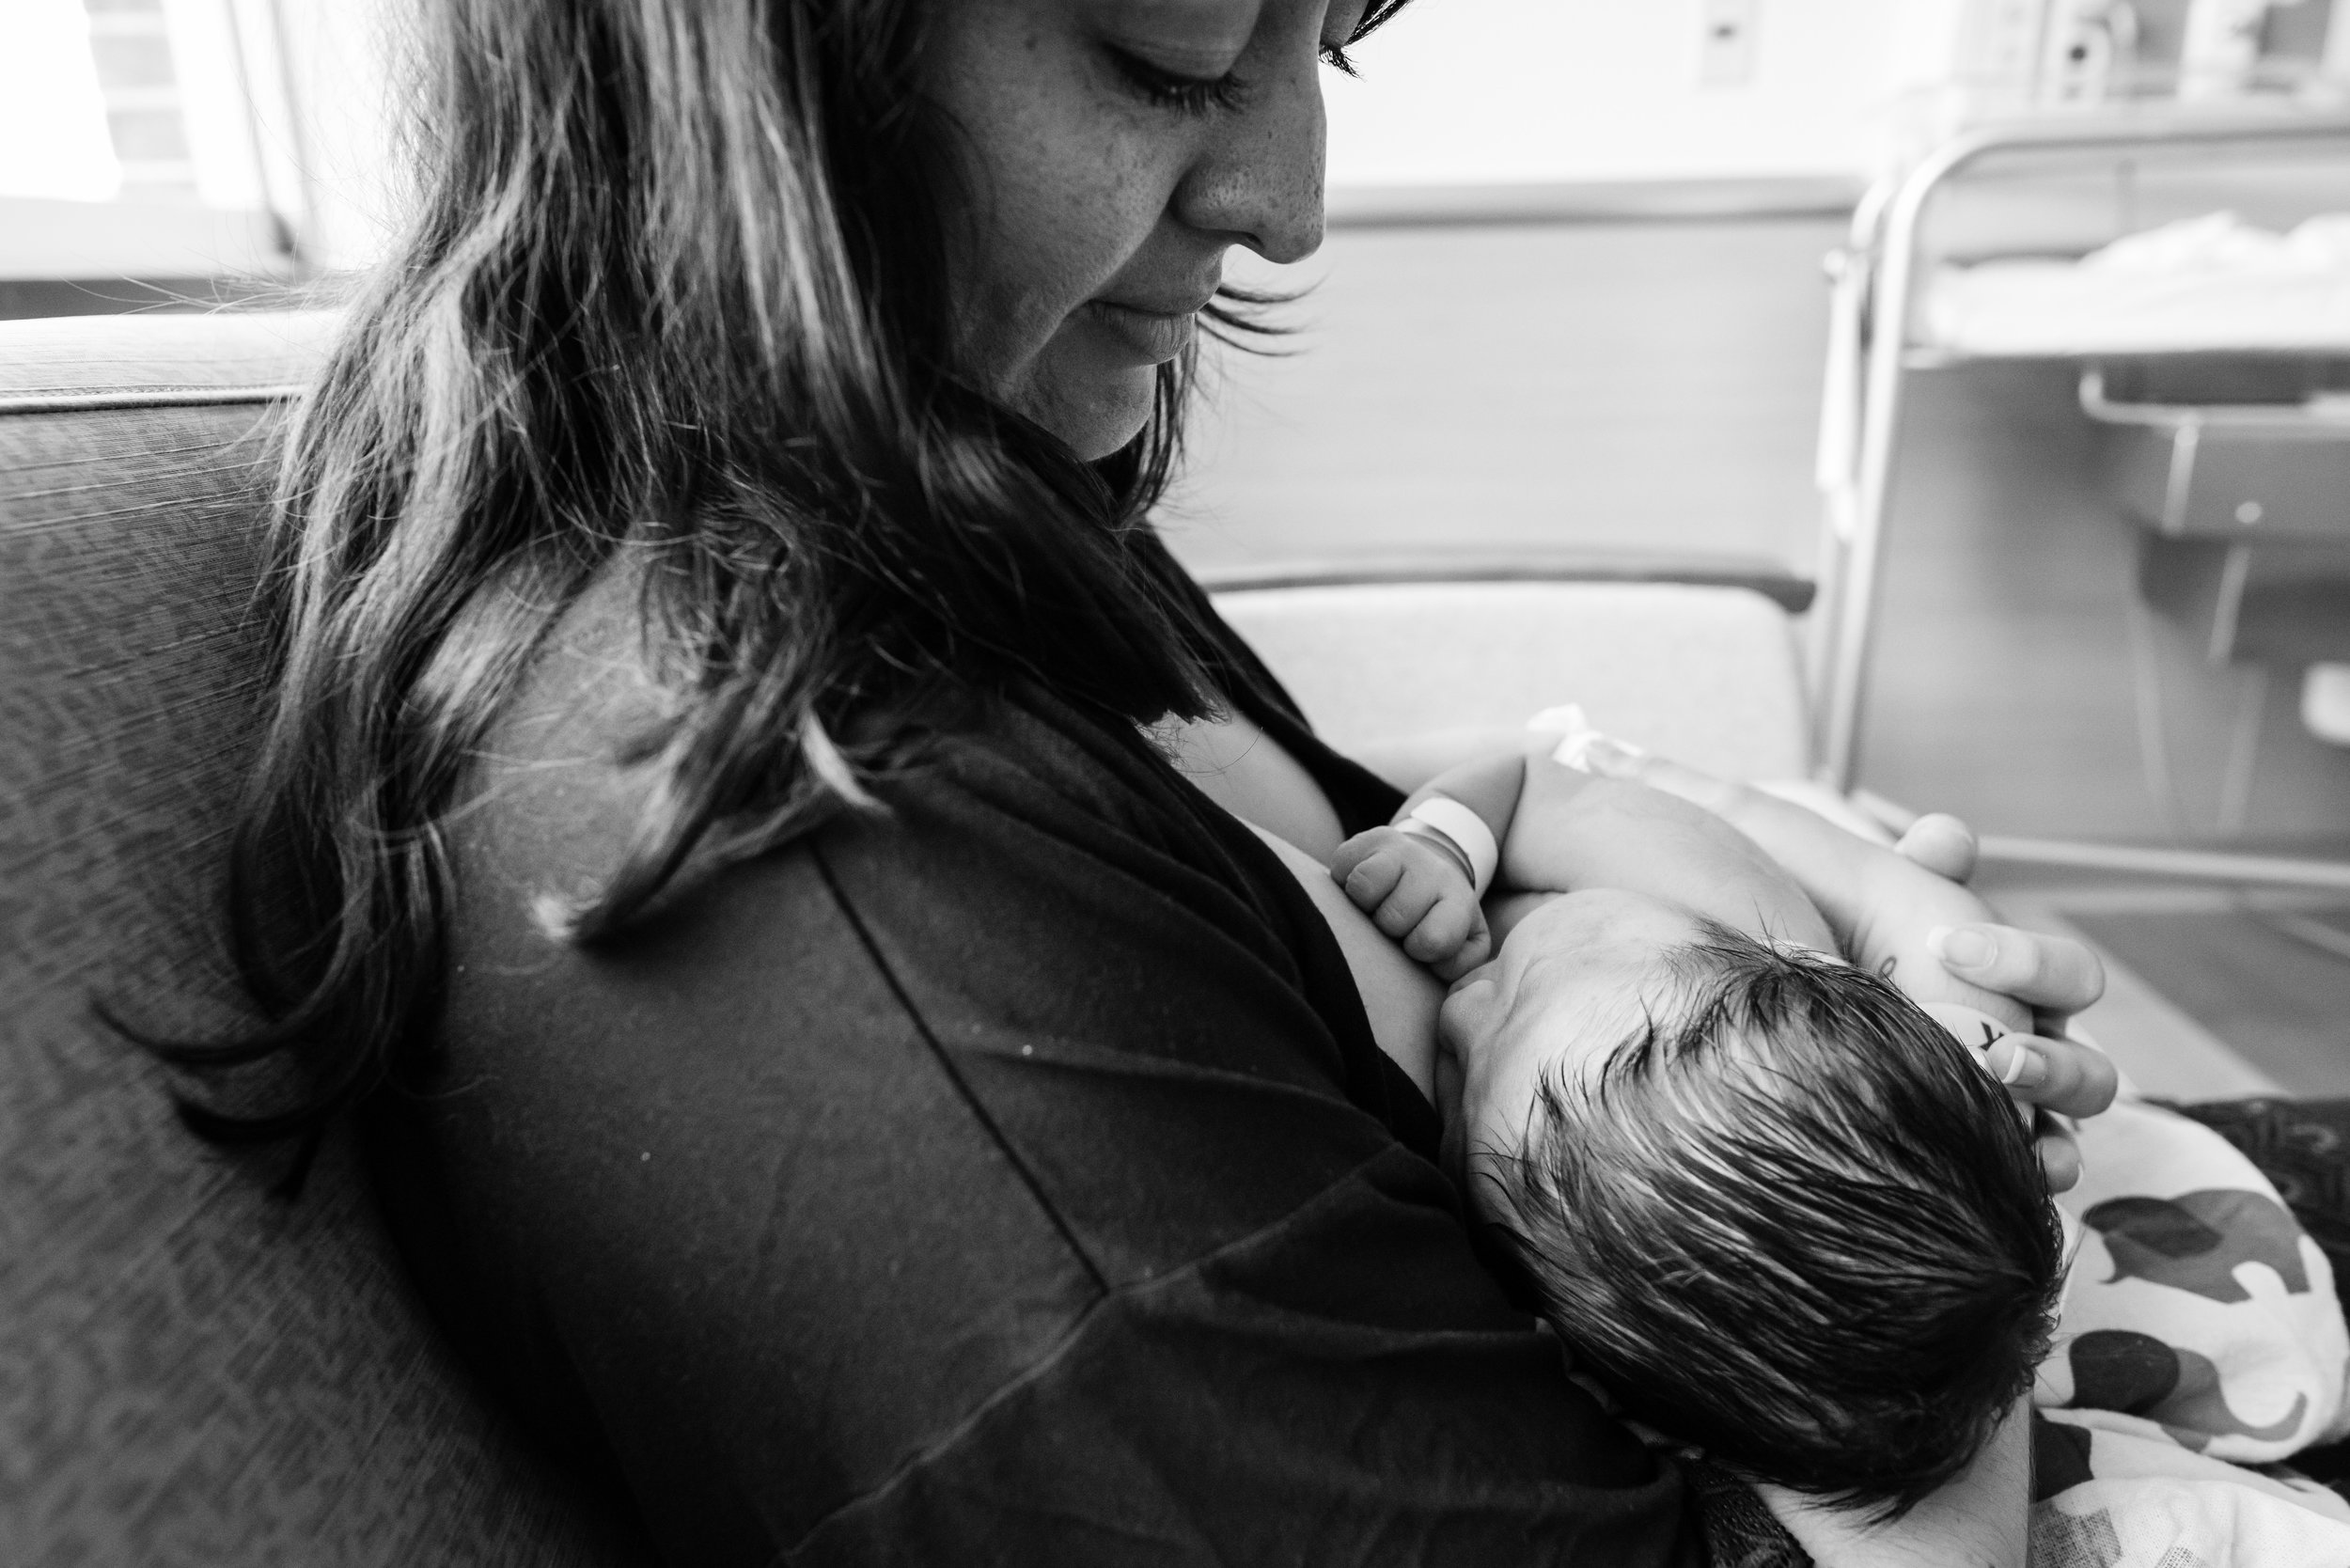 Newborn baby breastfeeding contentedly in hospital by Northern Virginia Newborn Photographer Nicole Sanchez